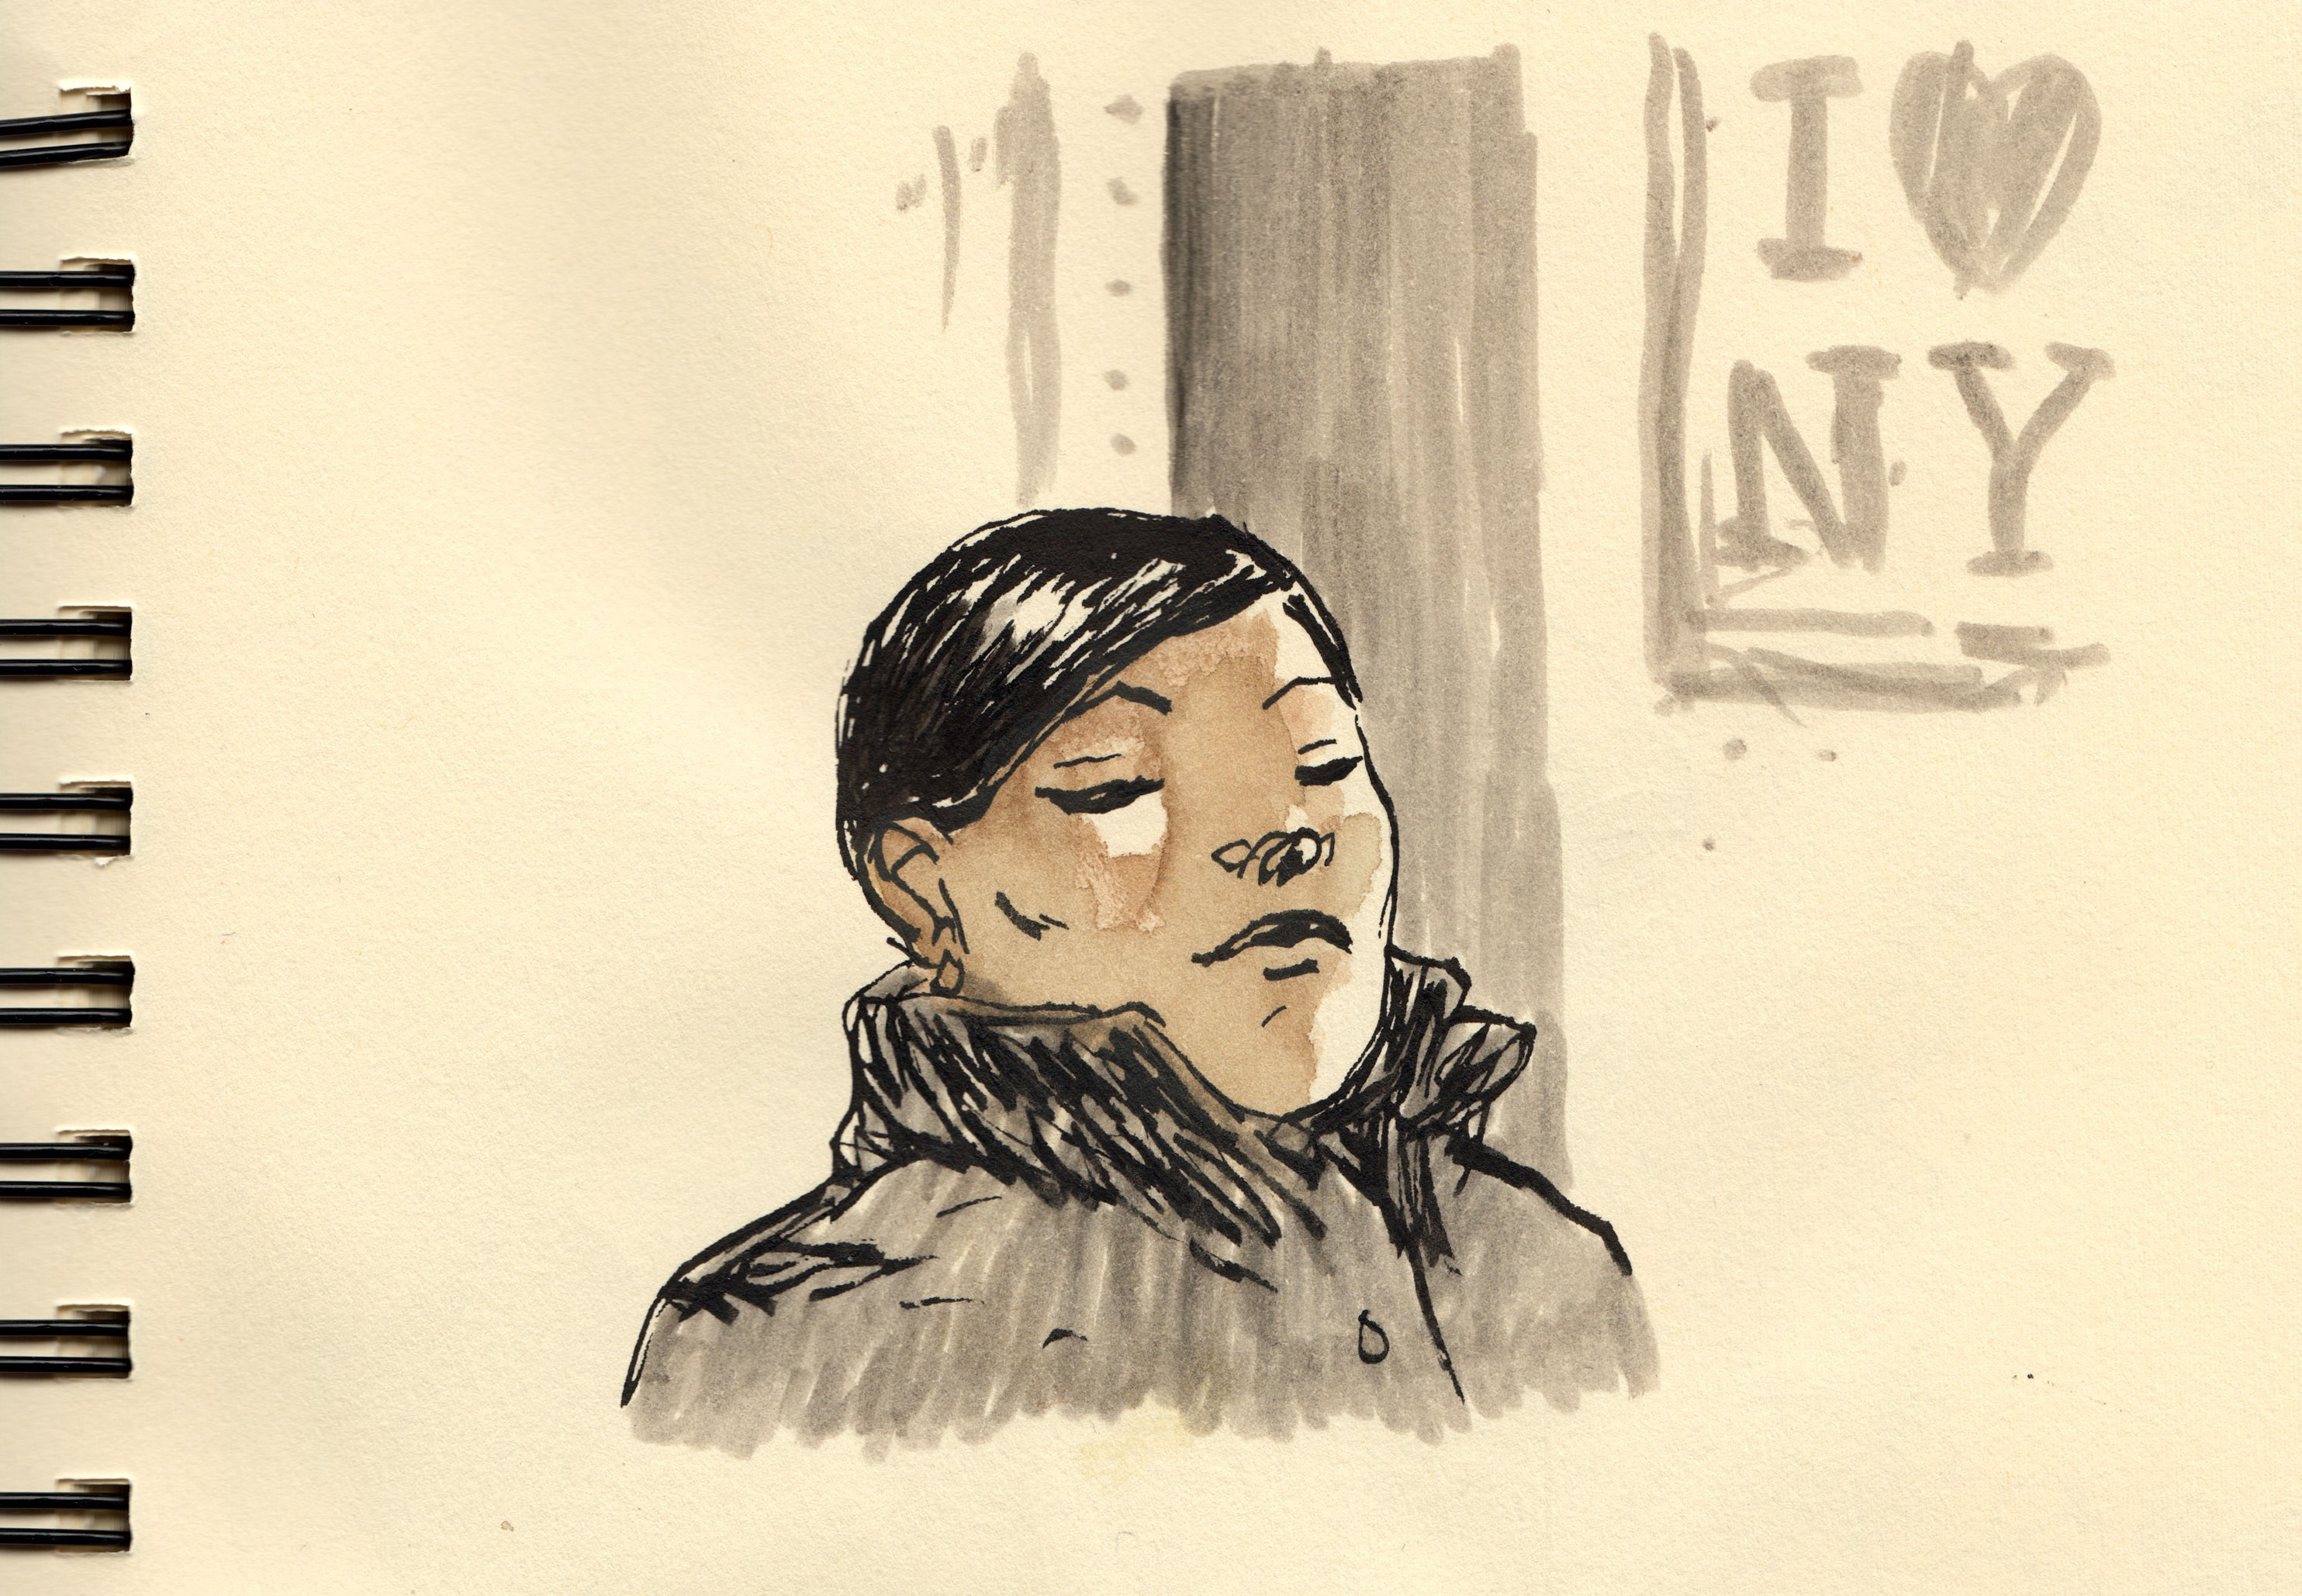 11 days of New York - The Illustrated